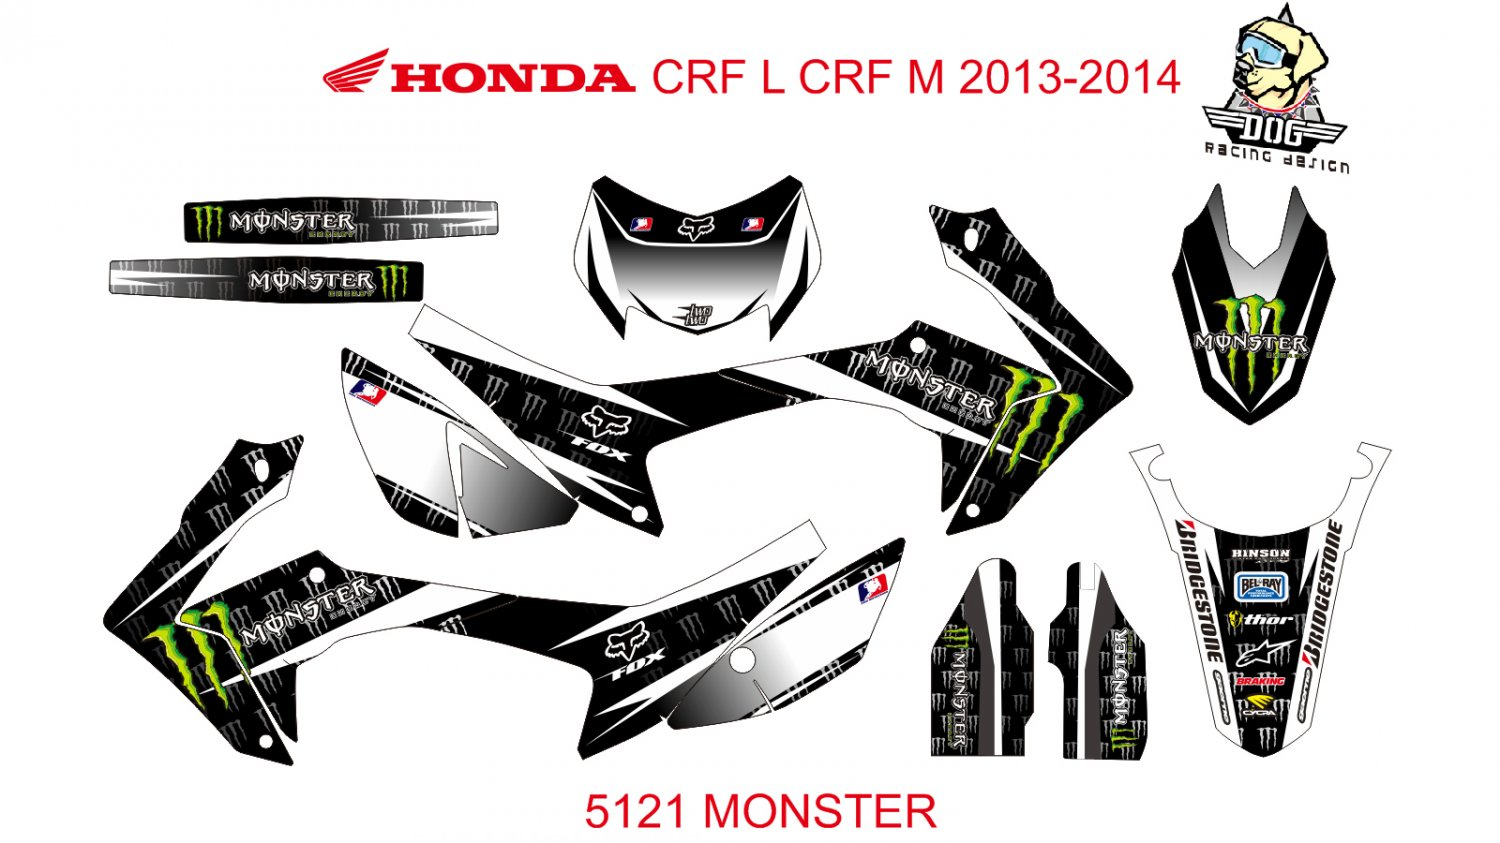 HONDA CRF L CRF M 2013-2014 GRAPHIC DECAL KIT CODE.5121